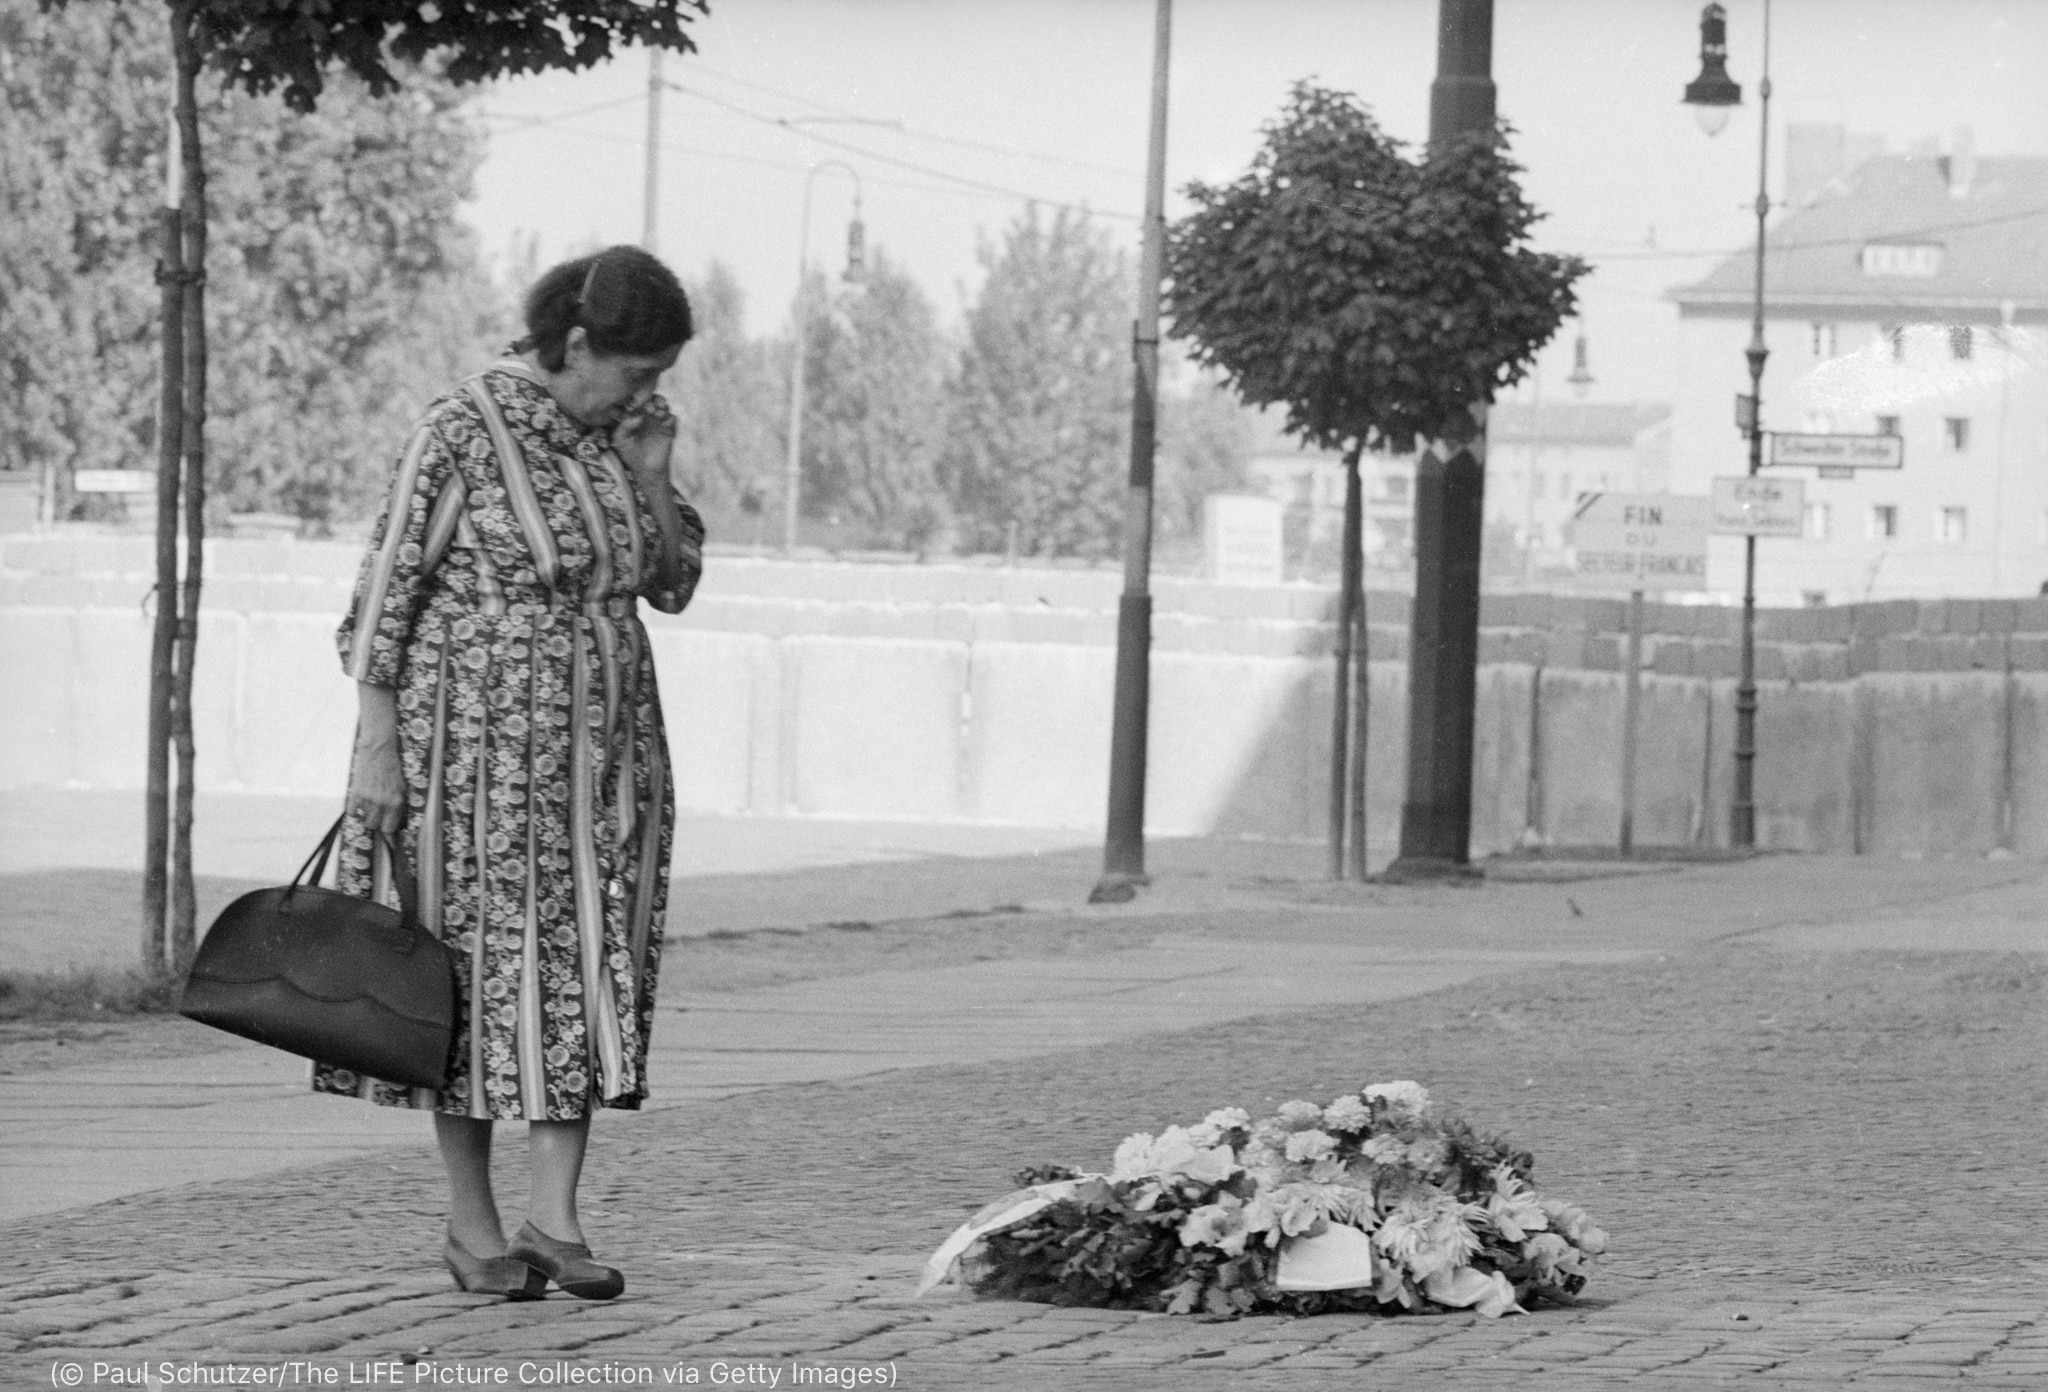 Woman mourning at pile of flowers in street (© Paul Schutzer/LIFE Picture Collection via Getty Images)